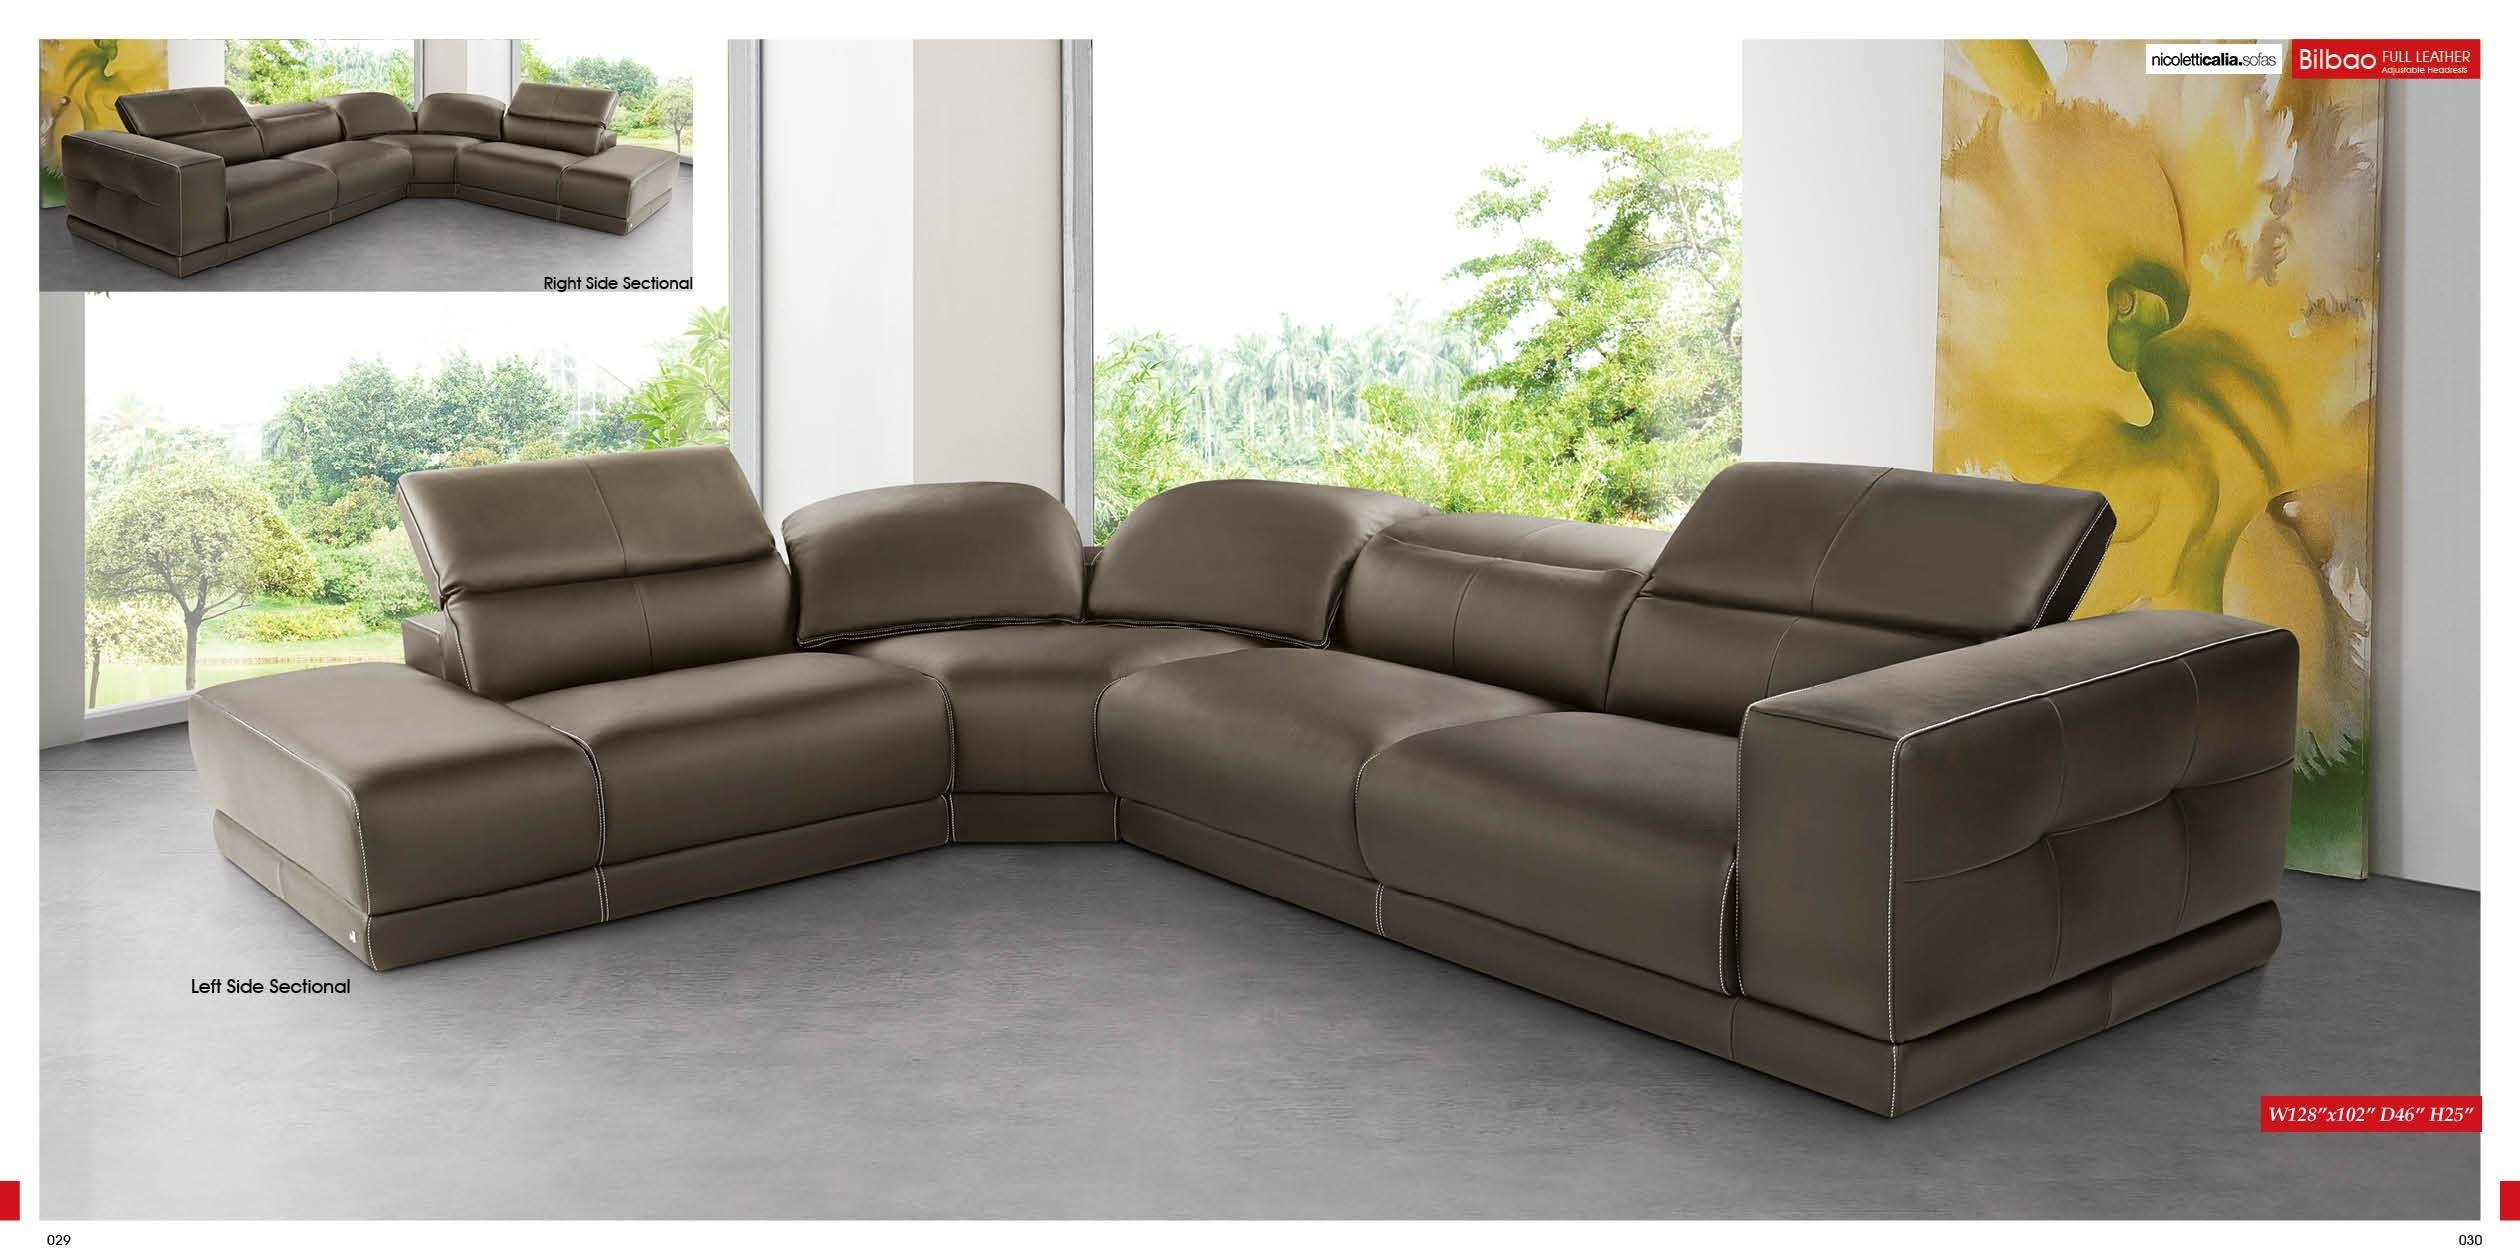 Inspiring Sectional Living Room Design – City Furniture Leather throughout Big Sofas Sectionals (Image 18 of 30)